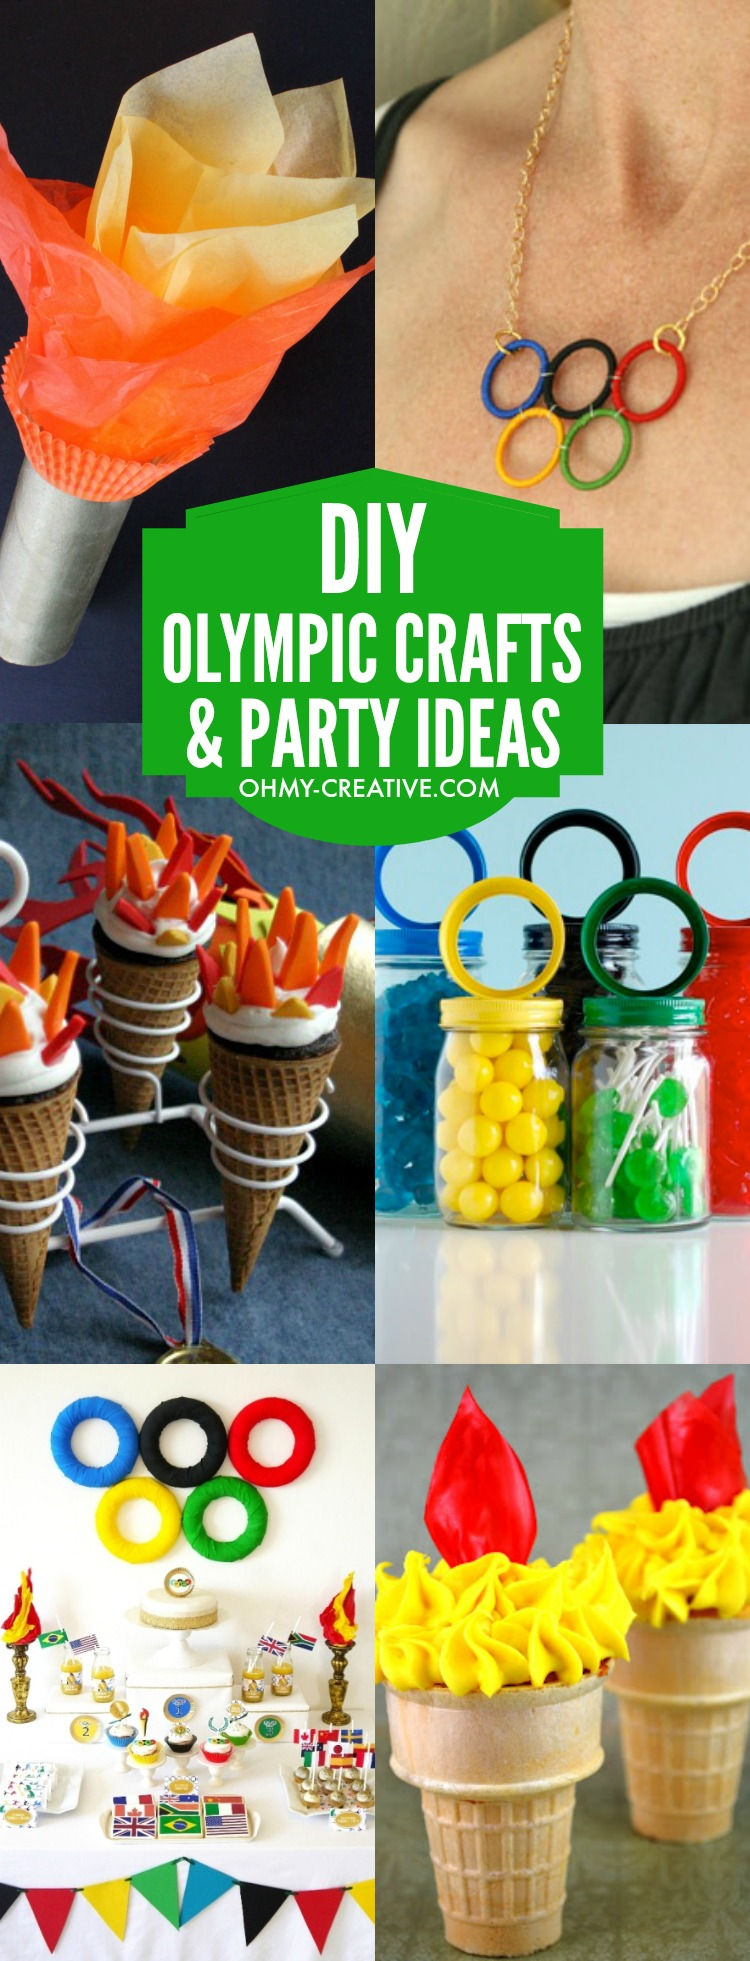 Diy olympic crafts and party ideas oh my creative for Crafts for birthday parties